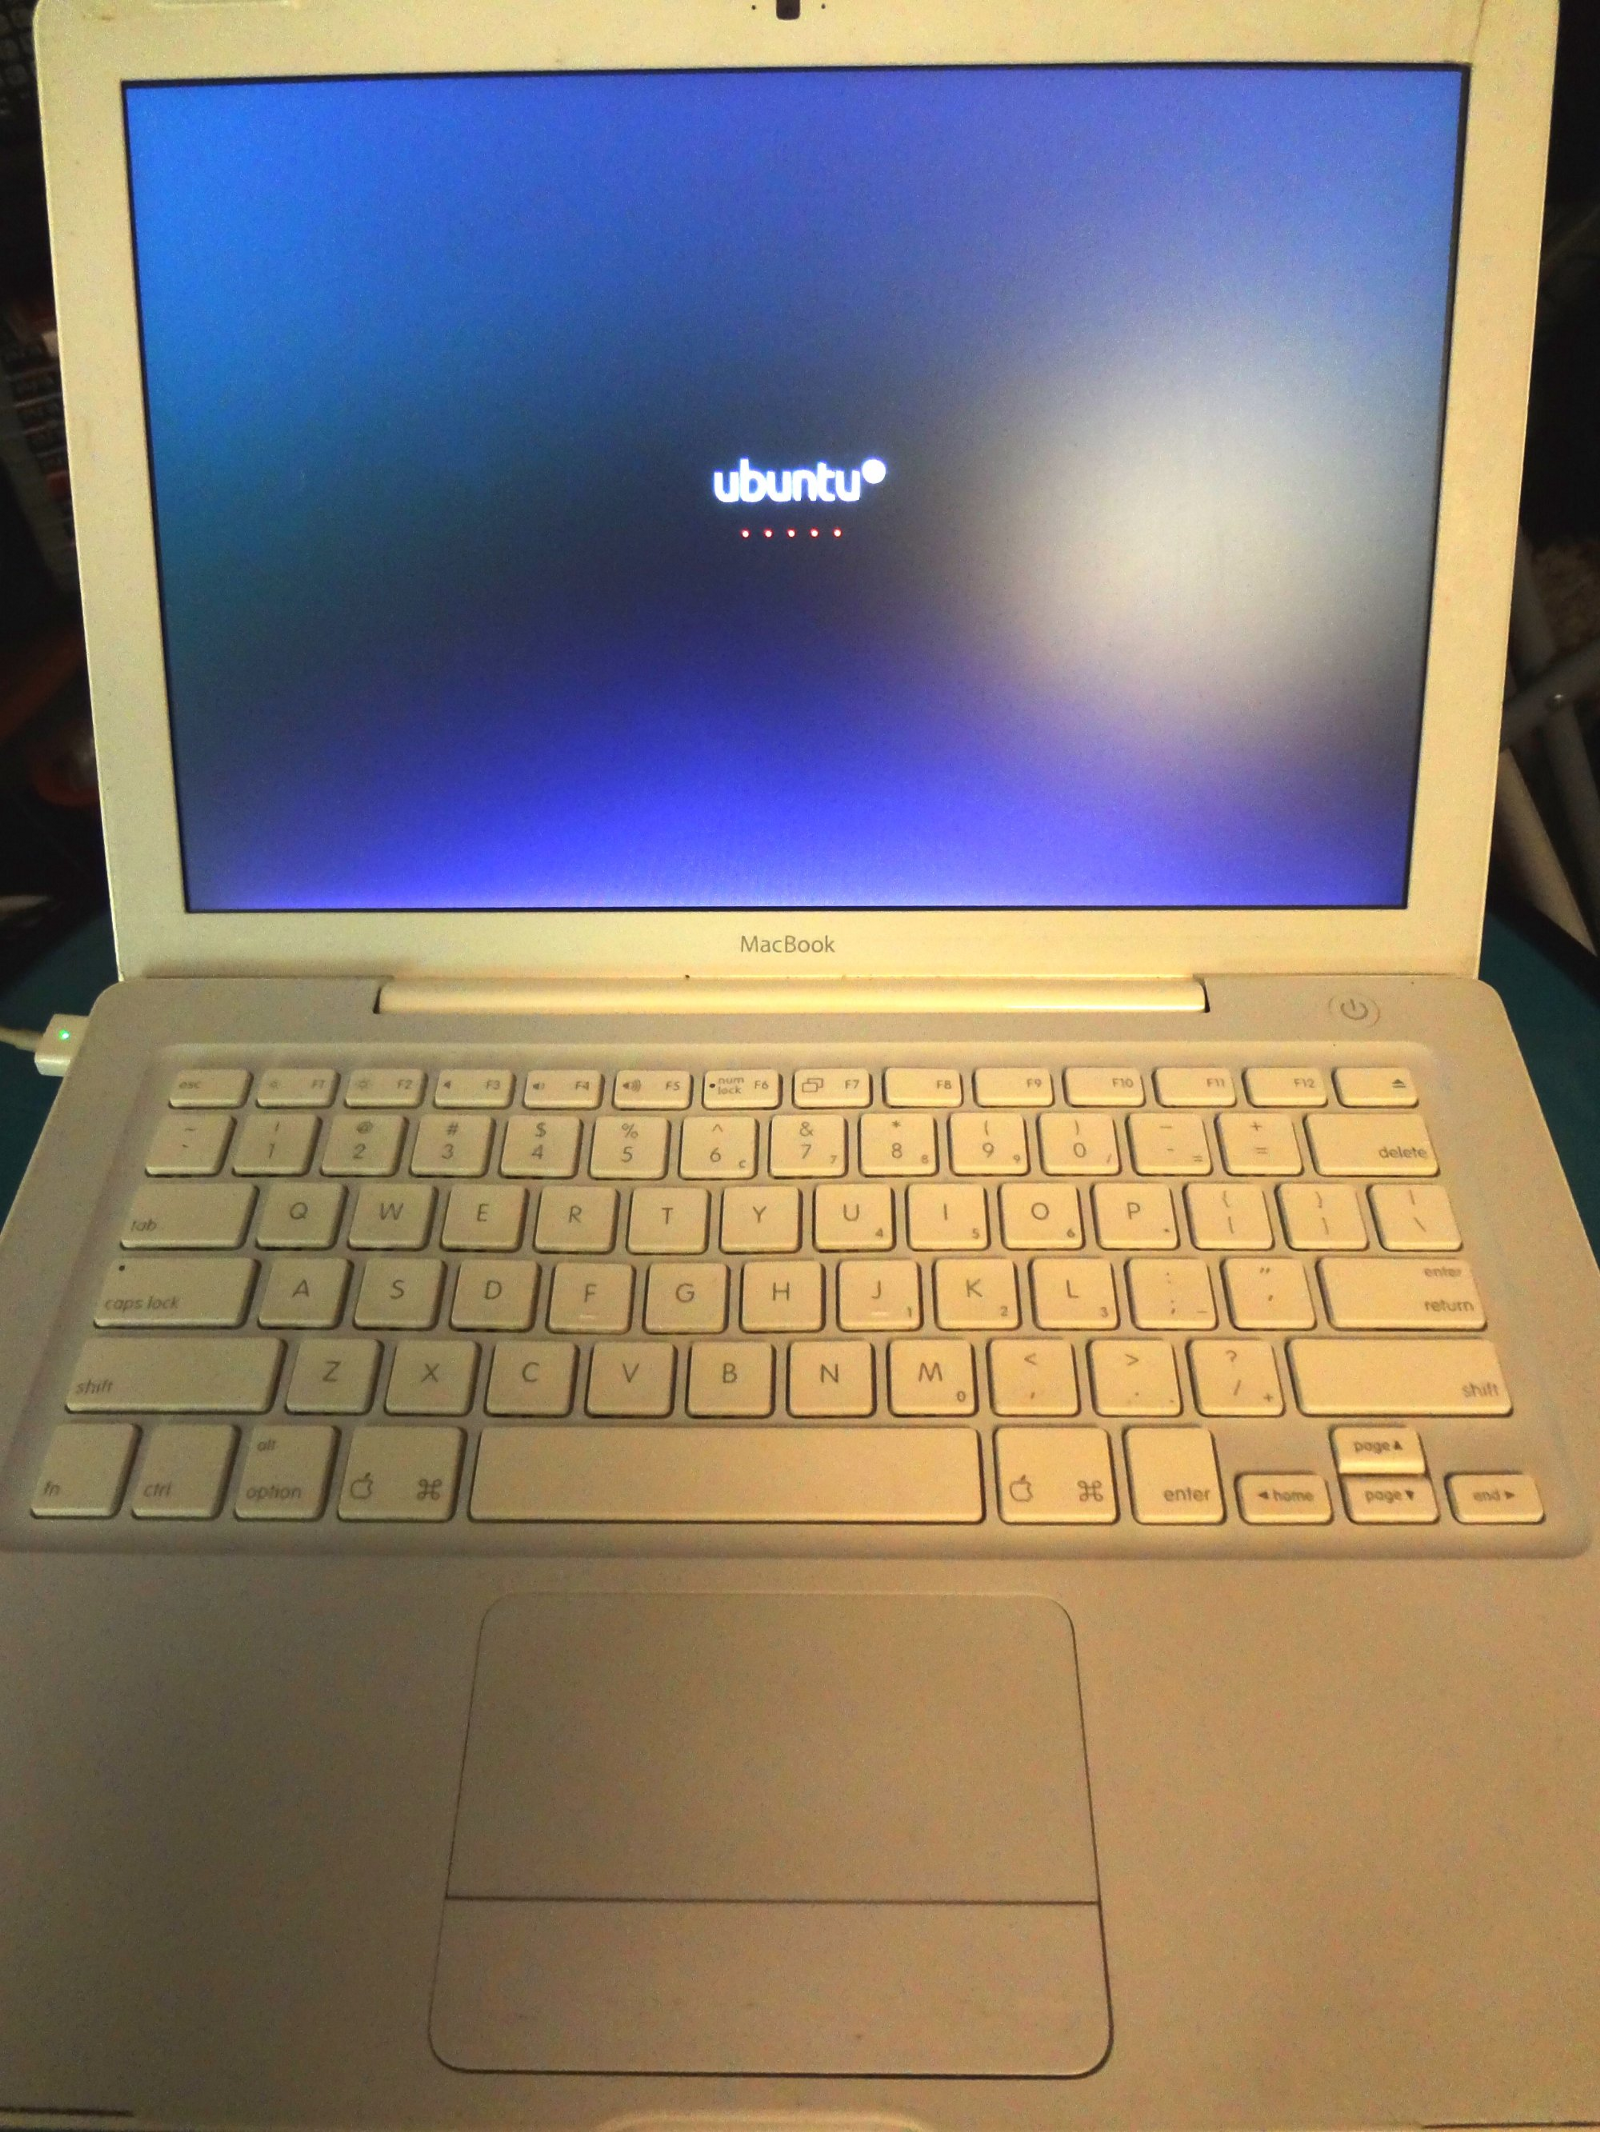 instalar windows 10 en macbook pro mid 2009